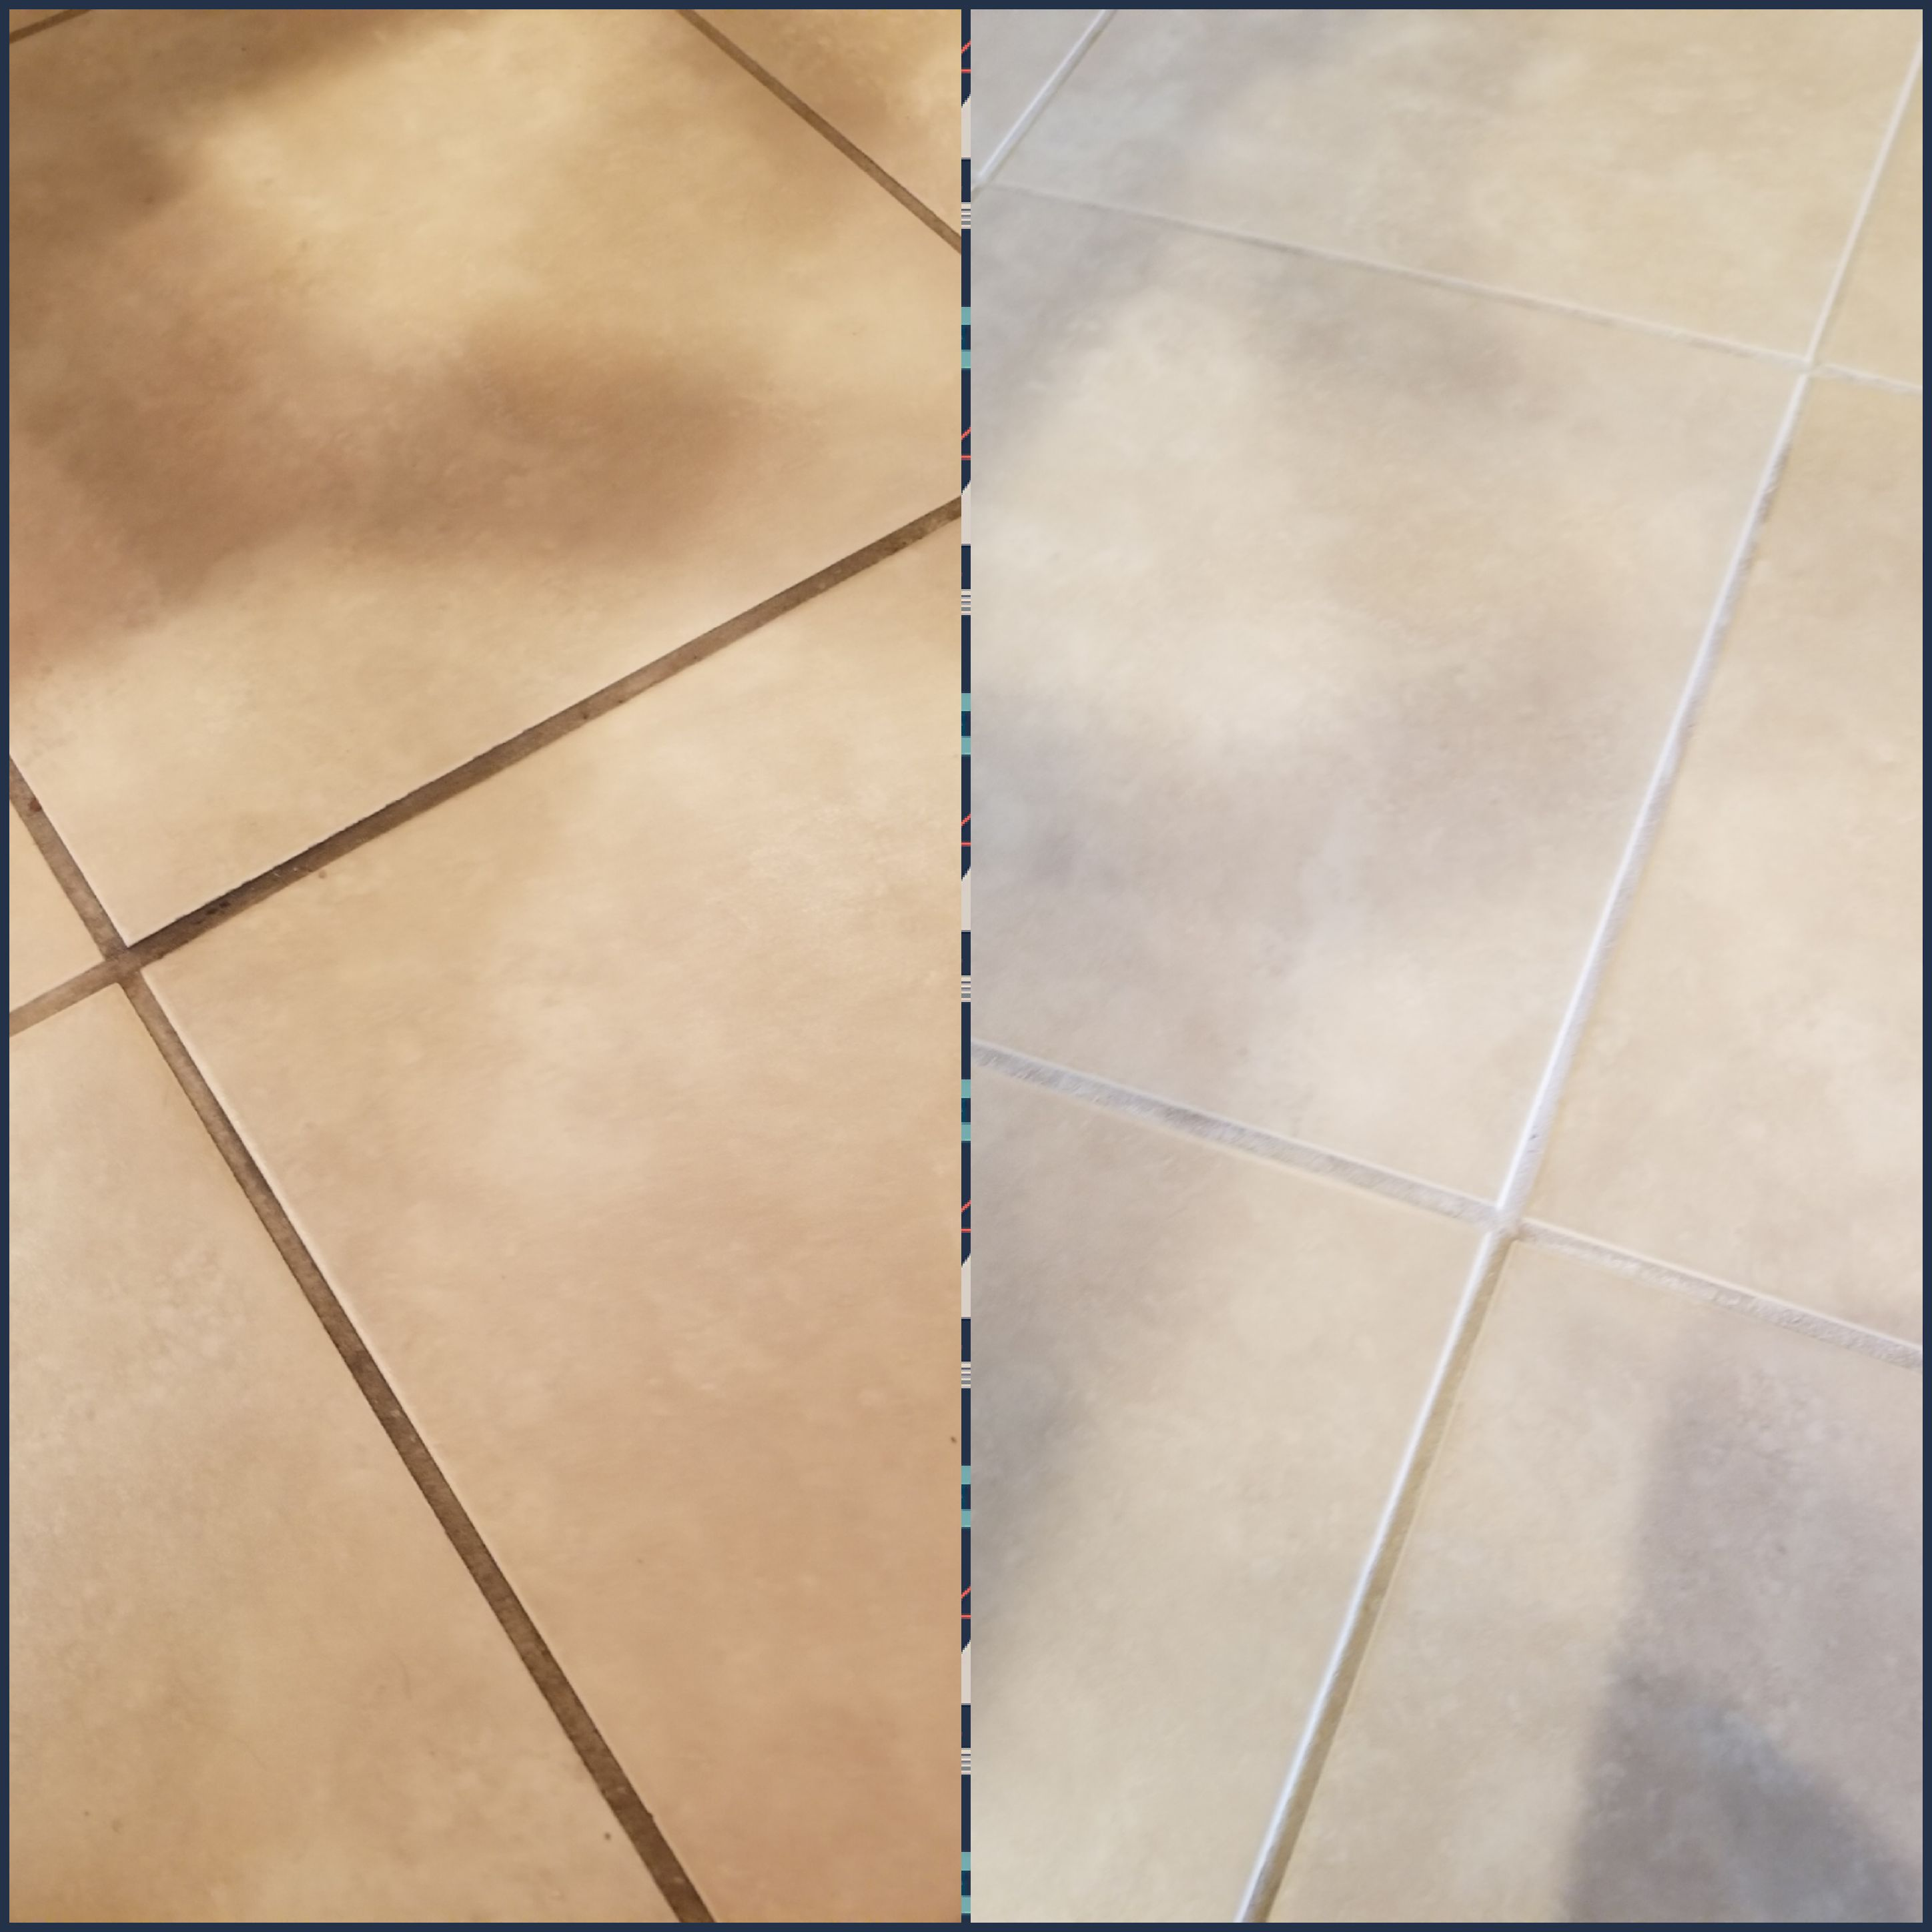 my kitchen floor tiles before and after